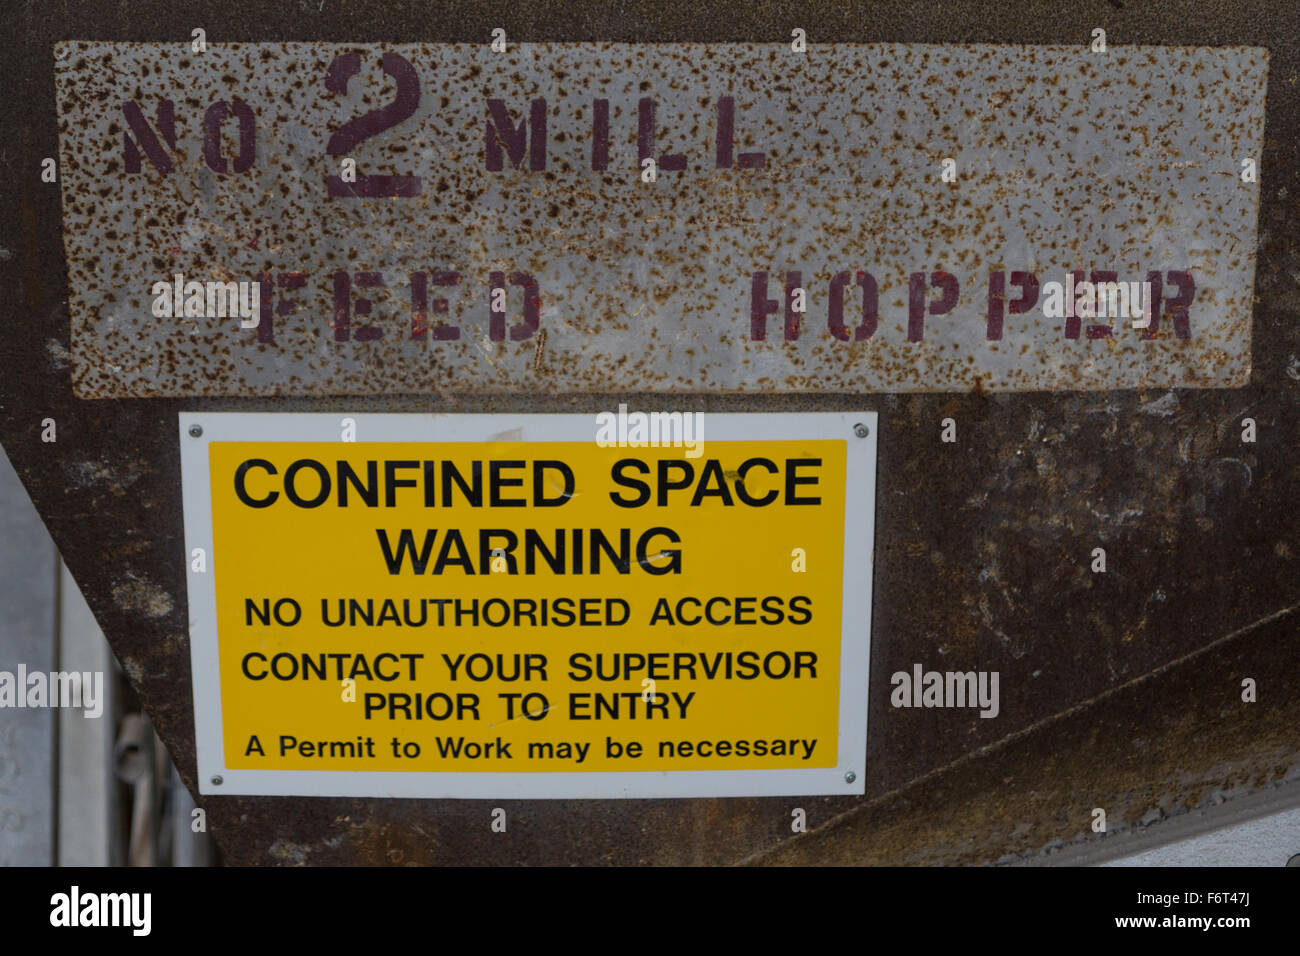 A confined space warning sign on an industrial mill hopper - Stock Image